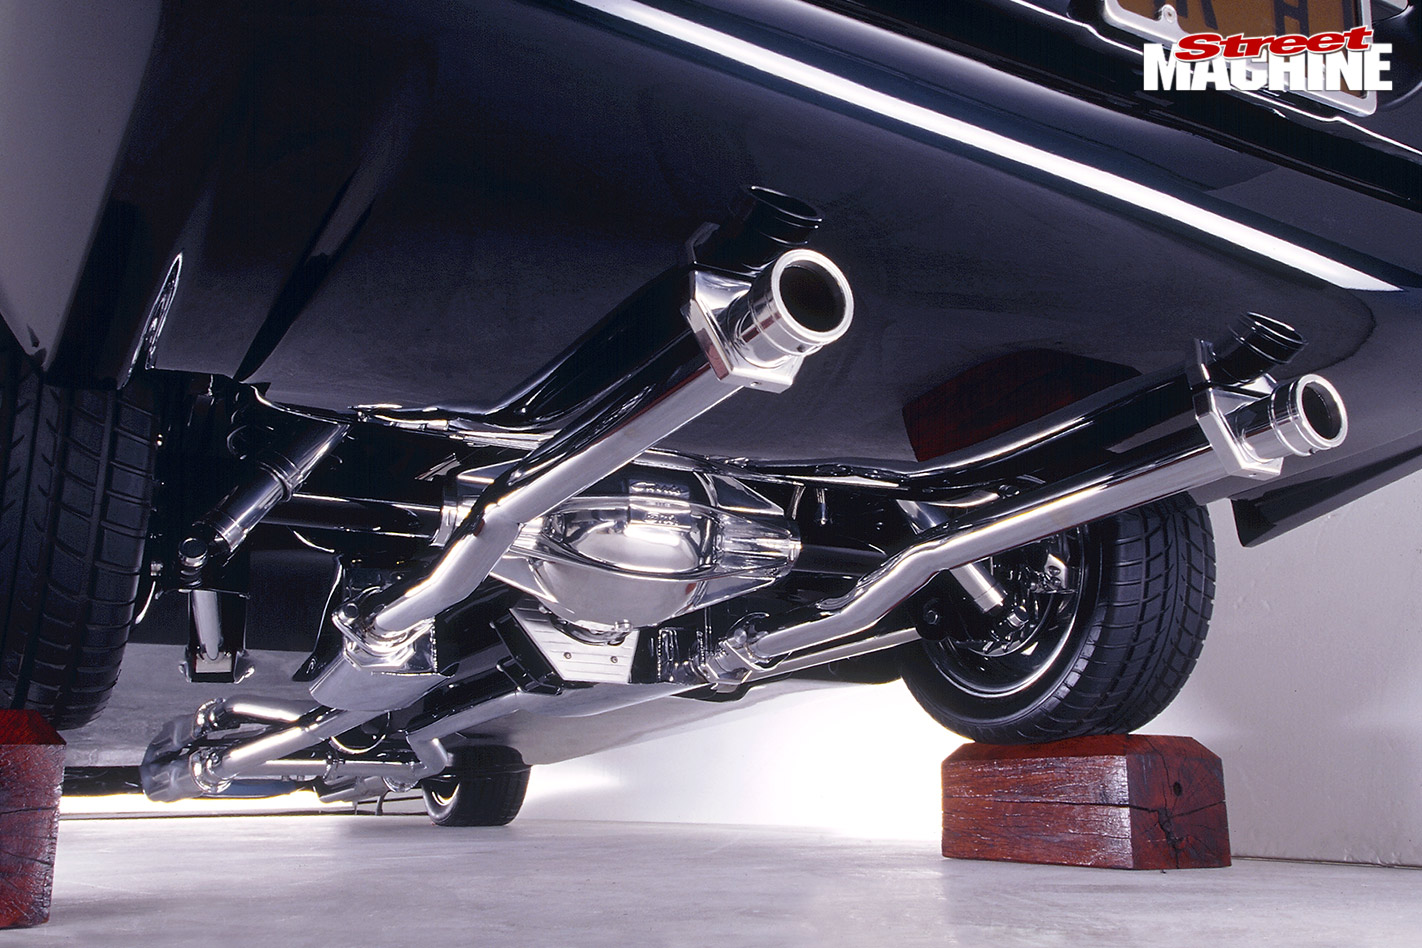 Holden HJ sedan exhaust